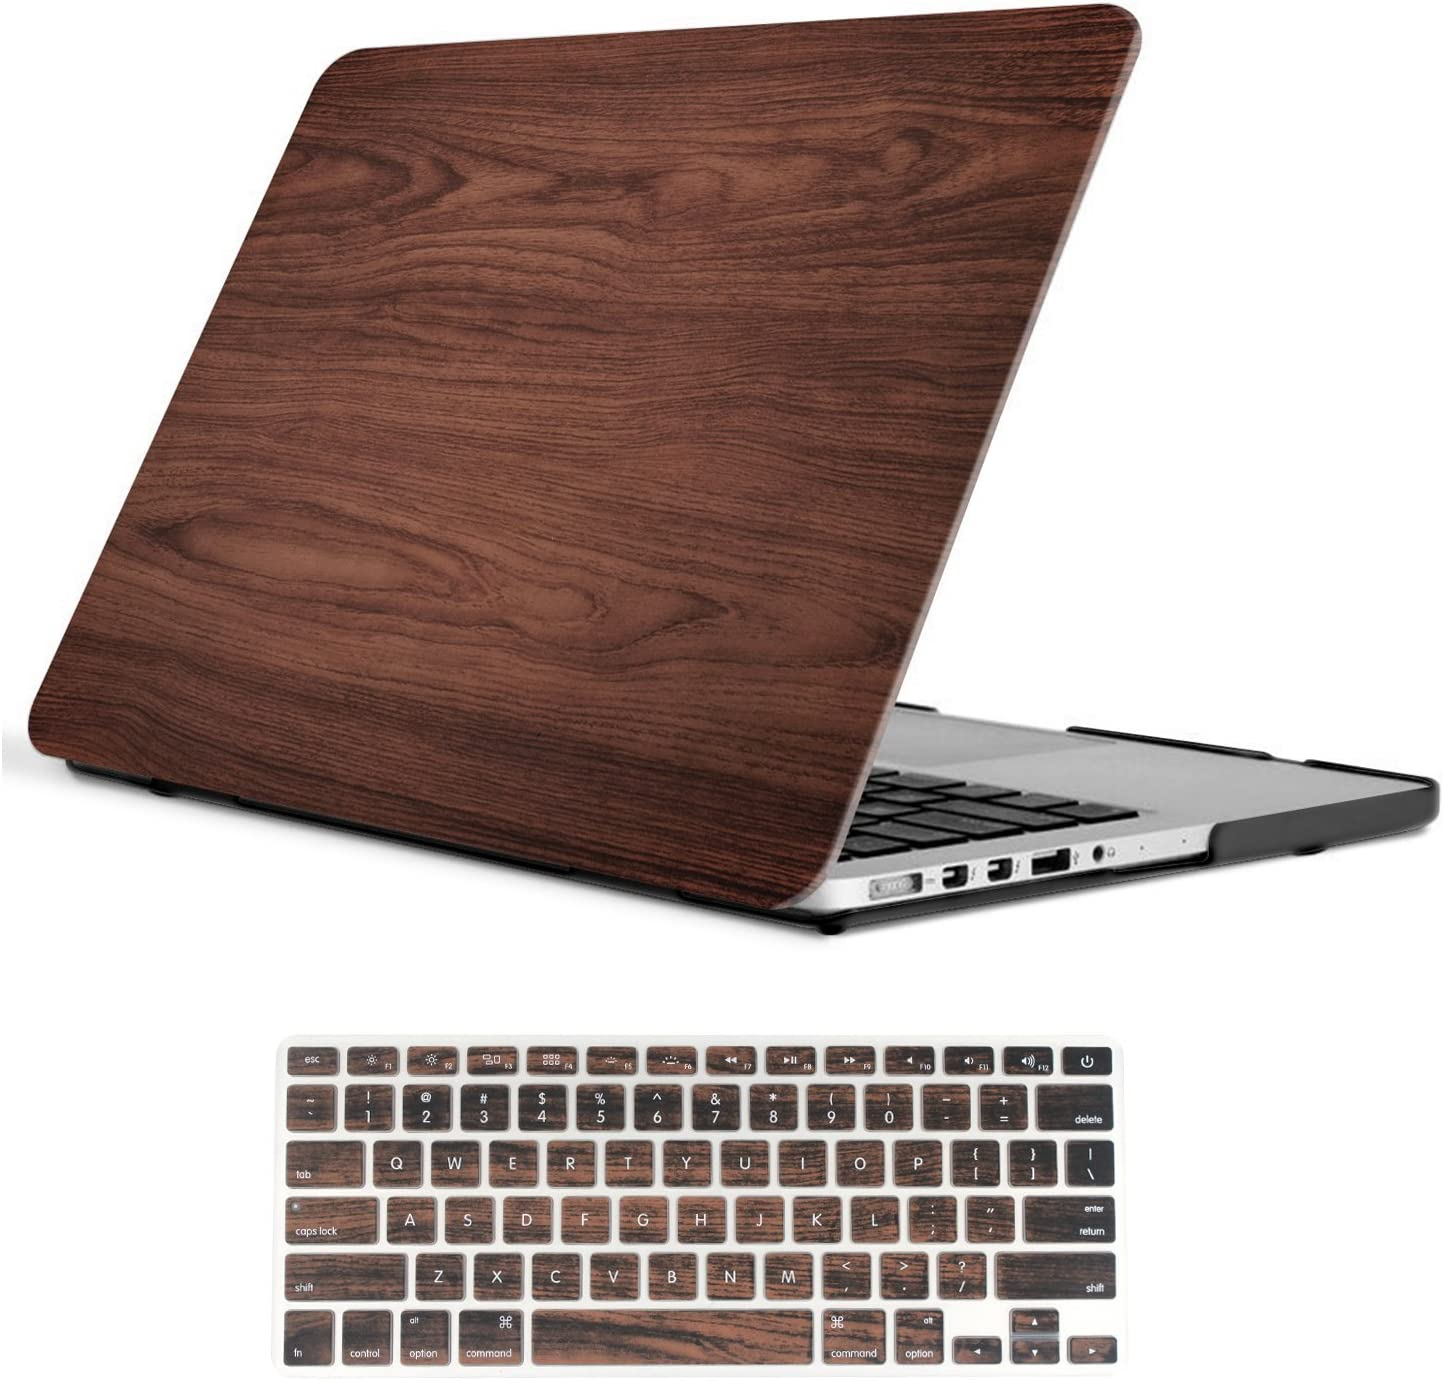 Macbook Pro 13 inch Case Model A1425/A1502 (Release 2015 - end 2012), iCasso Hard Plastic Shell Case Protector with Keyboard Cover Only Compatible Old Version MacBook Pro 13'' Retina Display - Brown